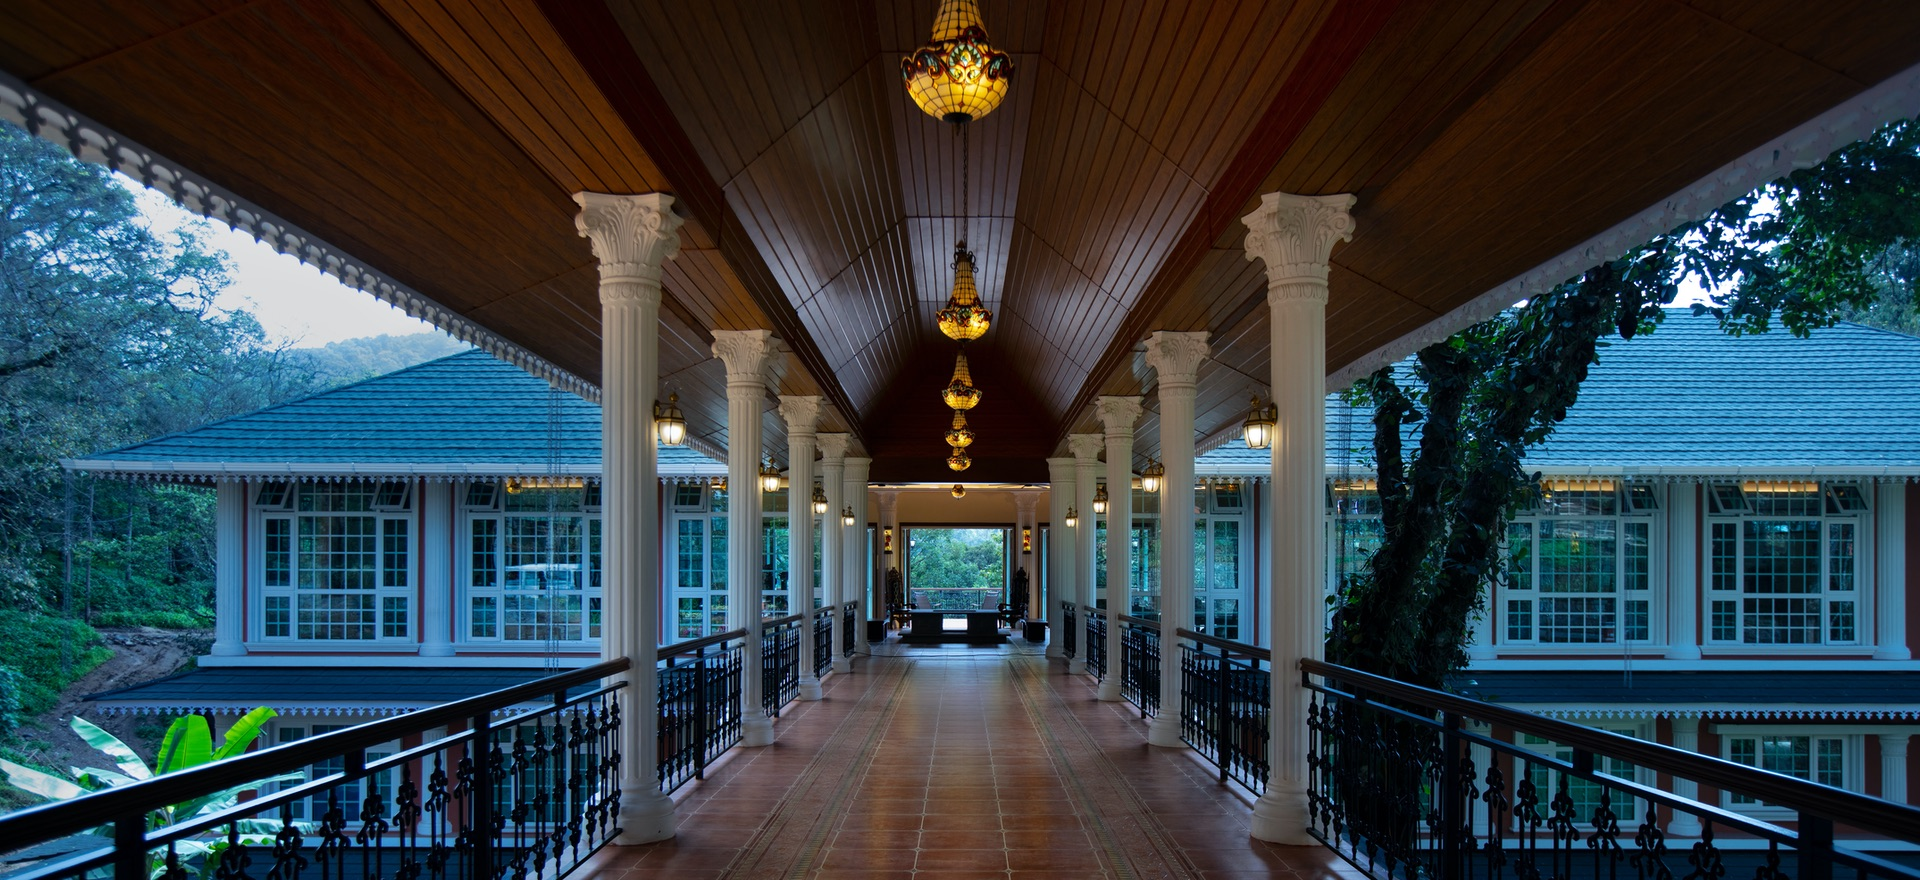 Porch to lobby - Coorg Wilderness Resort